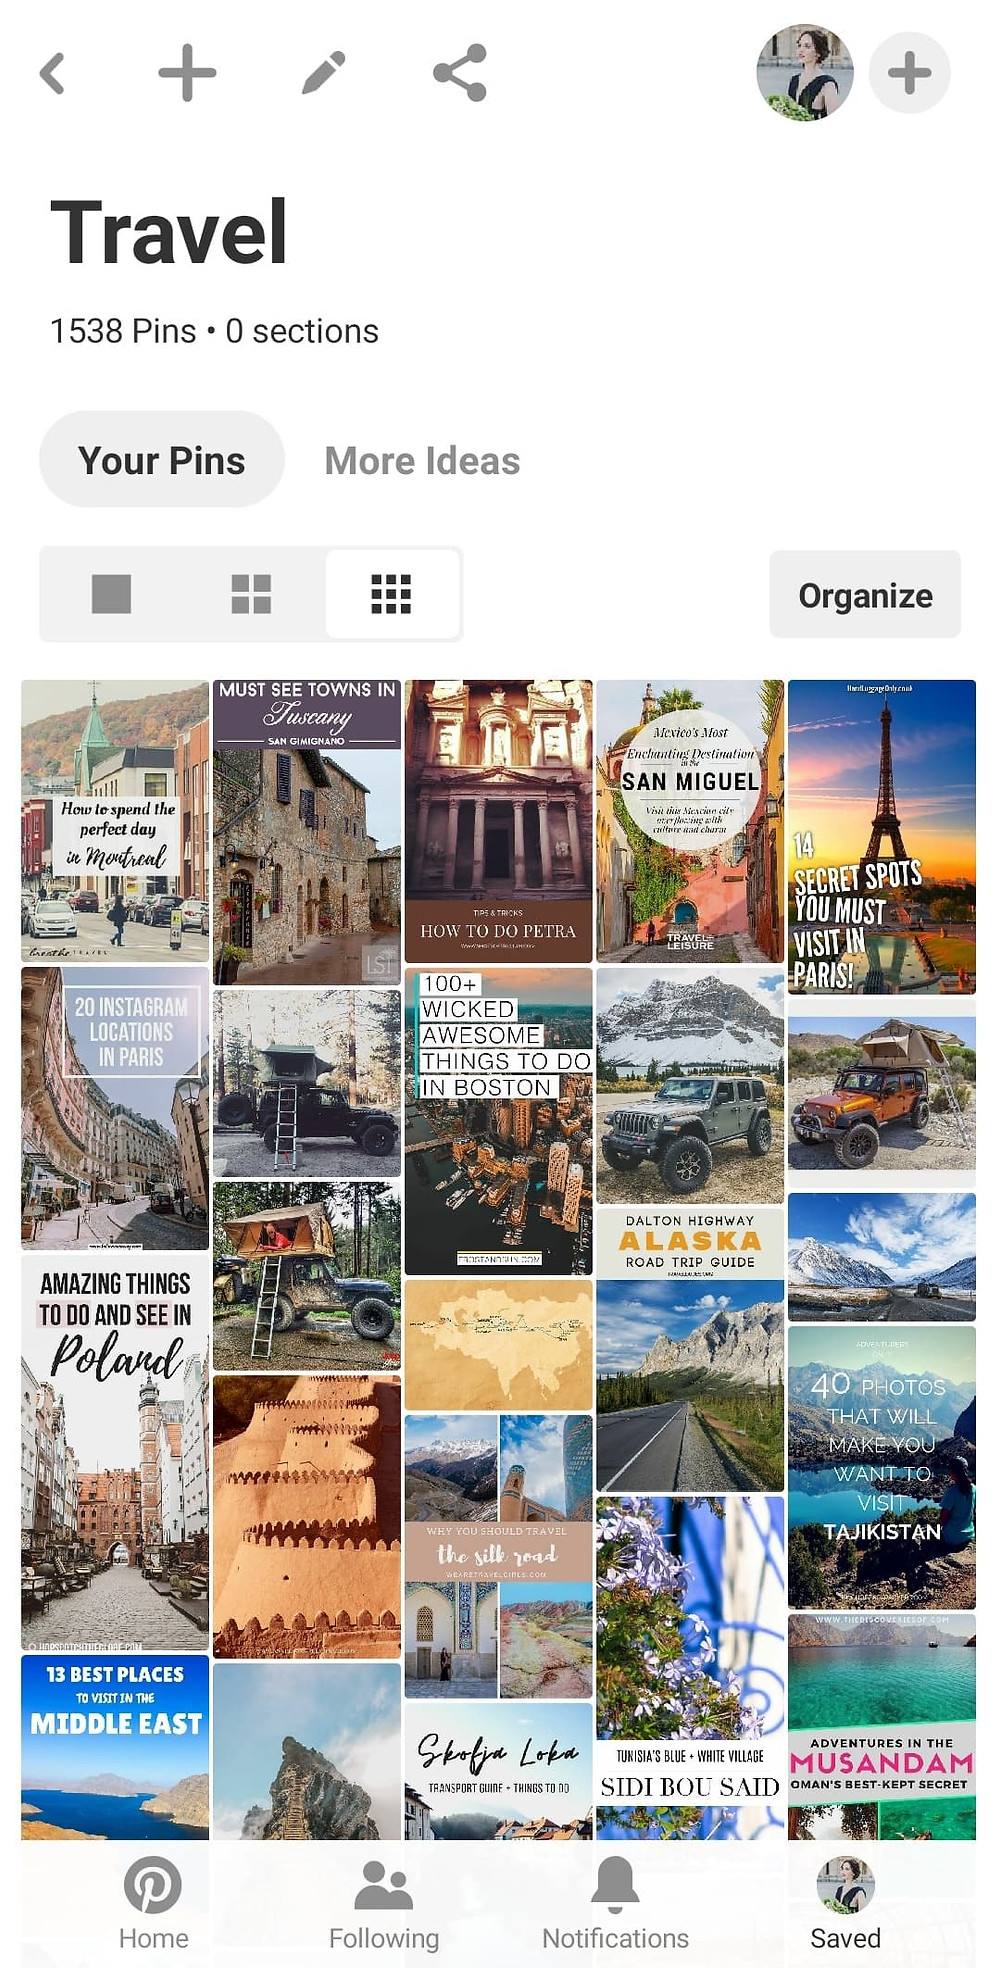 A screenshot of Shots Of Trillium's Pinterest Page for Travel